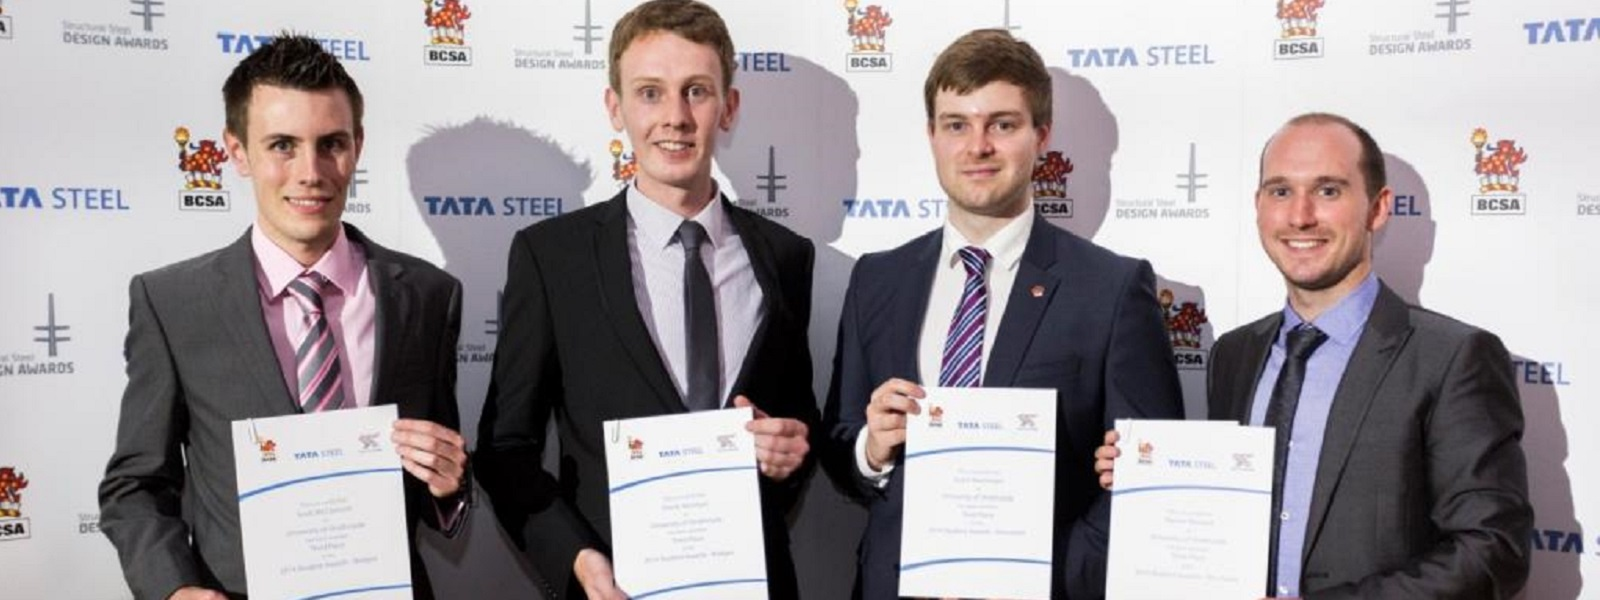 Students receiving TATA Steel Awards